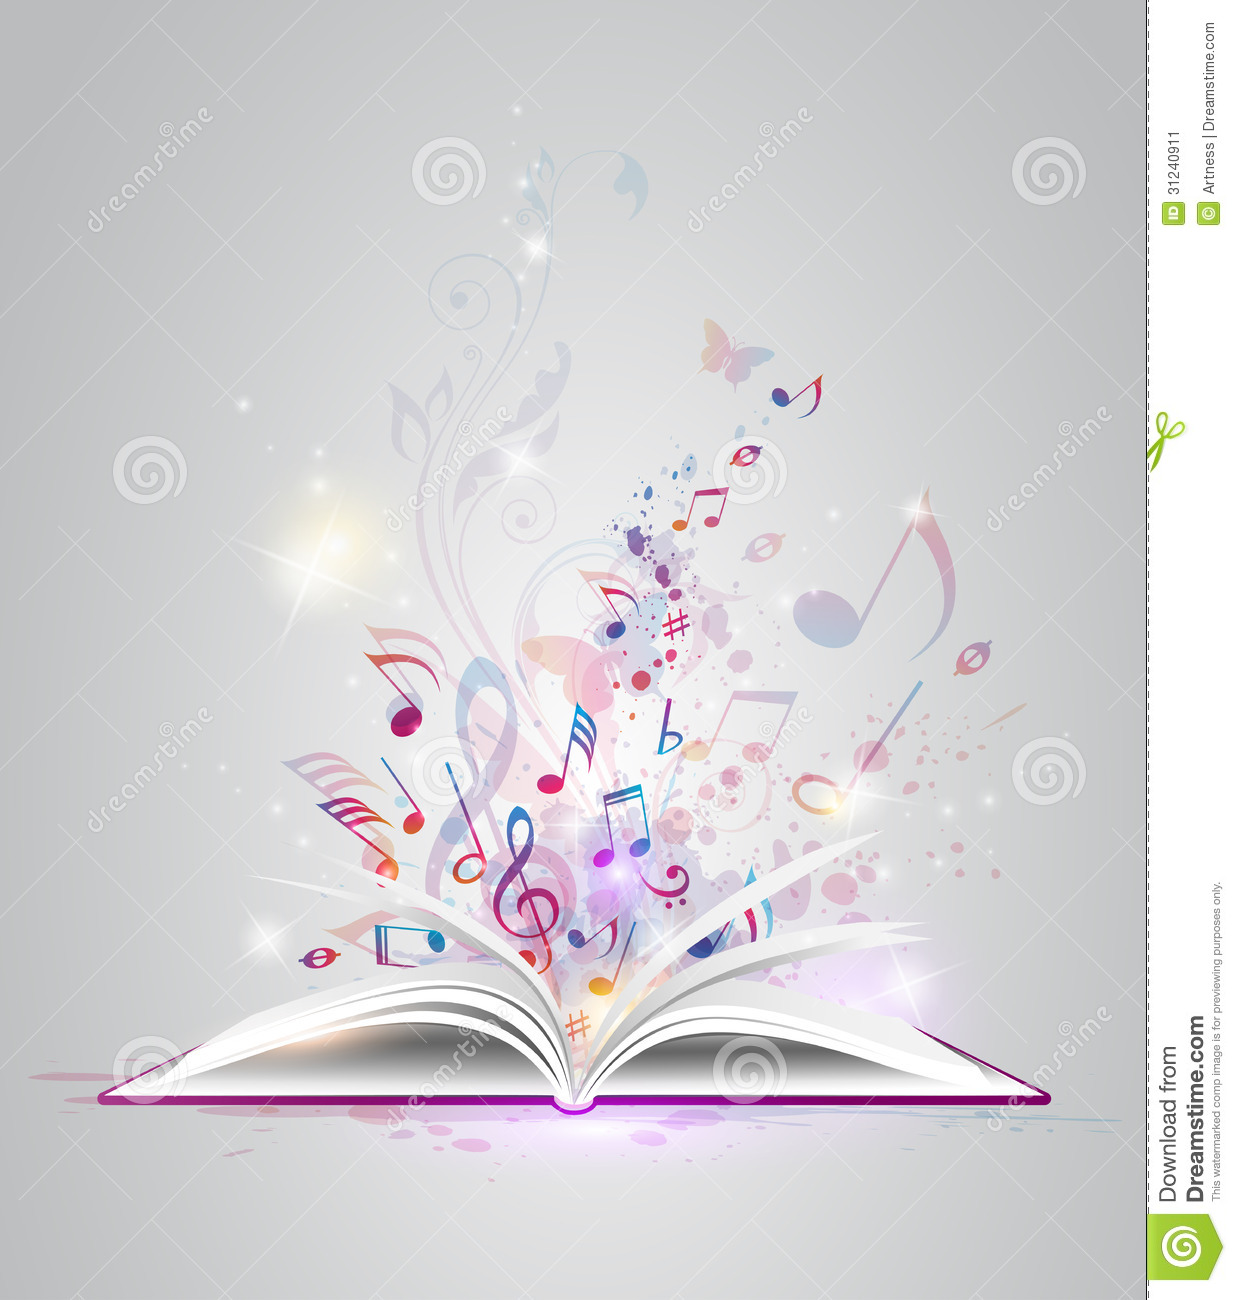 Vector abstract background with open book and notes.